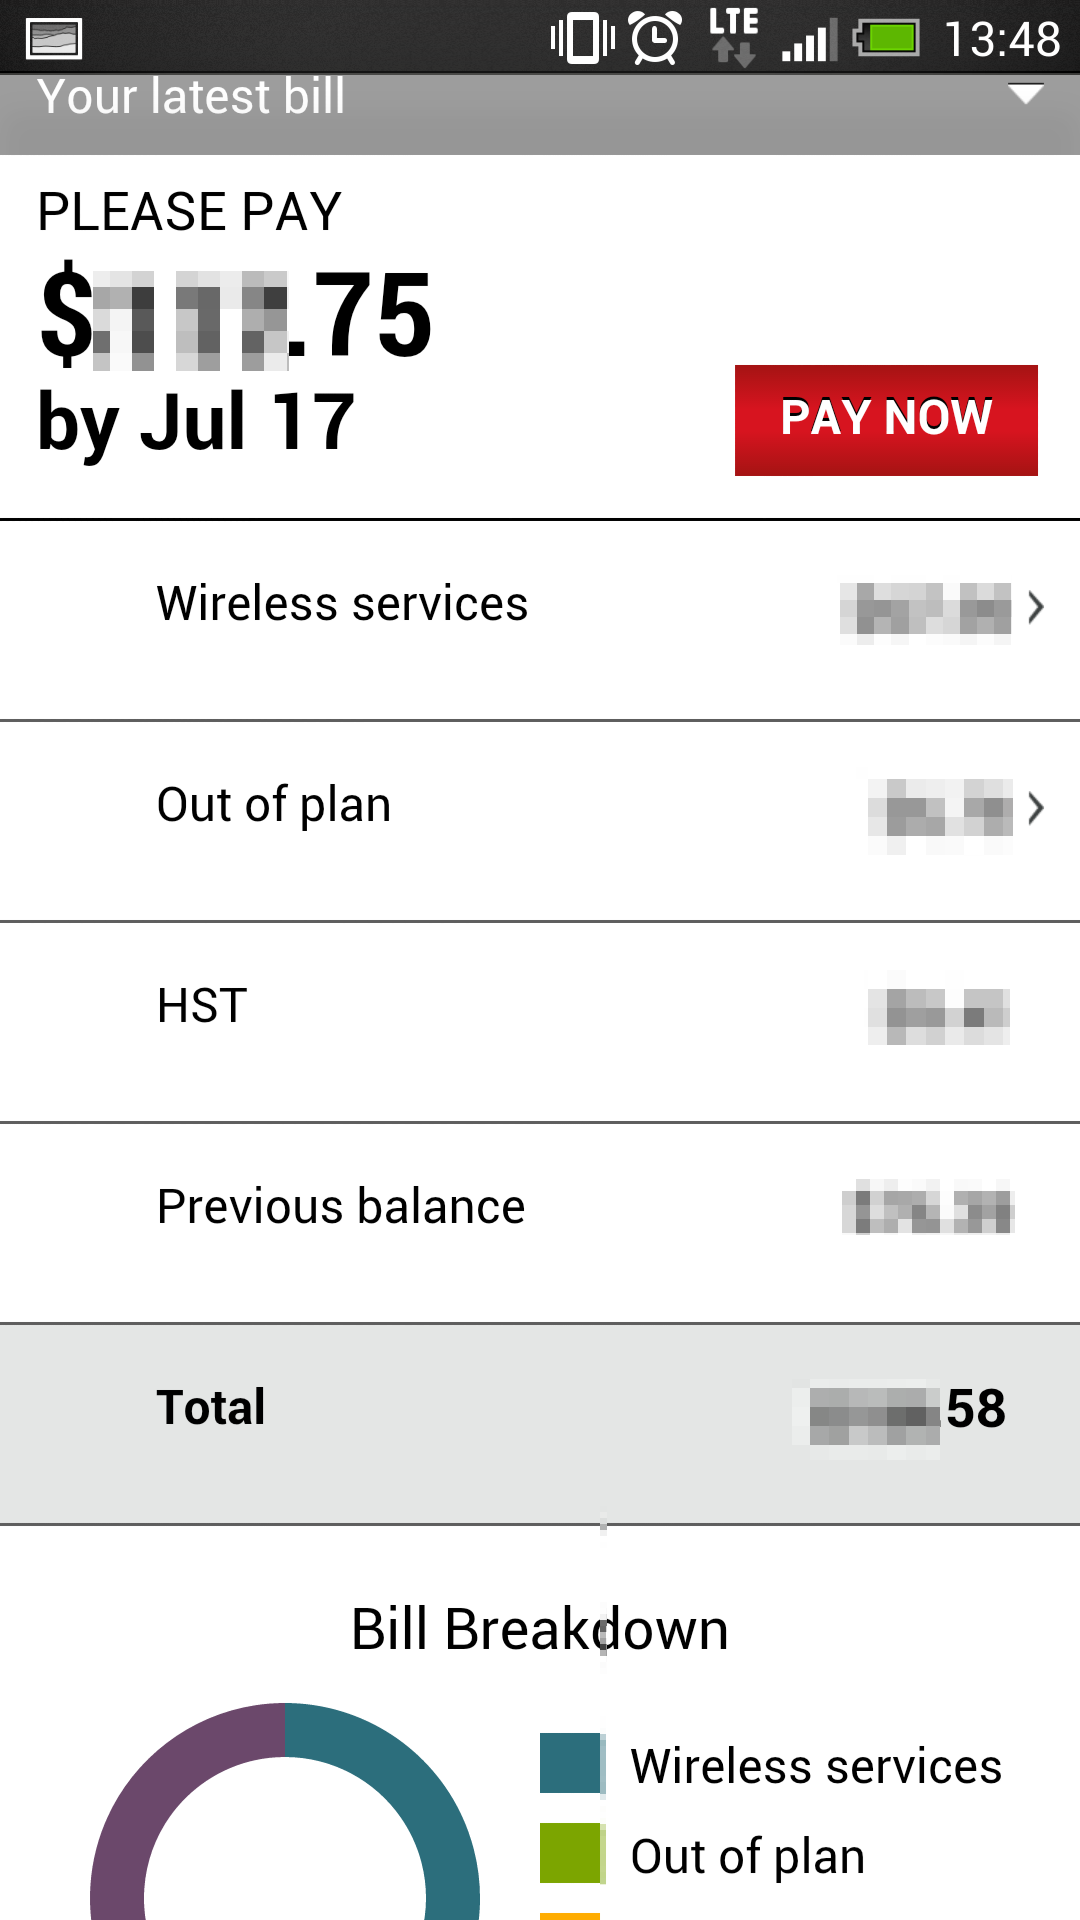 Rogers piloting mobile bill payment portal with select customers in Ontario